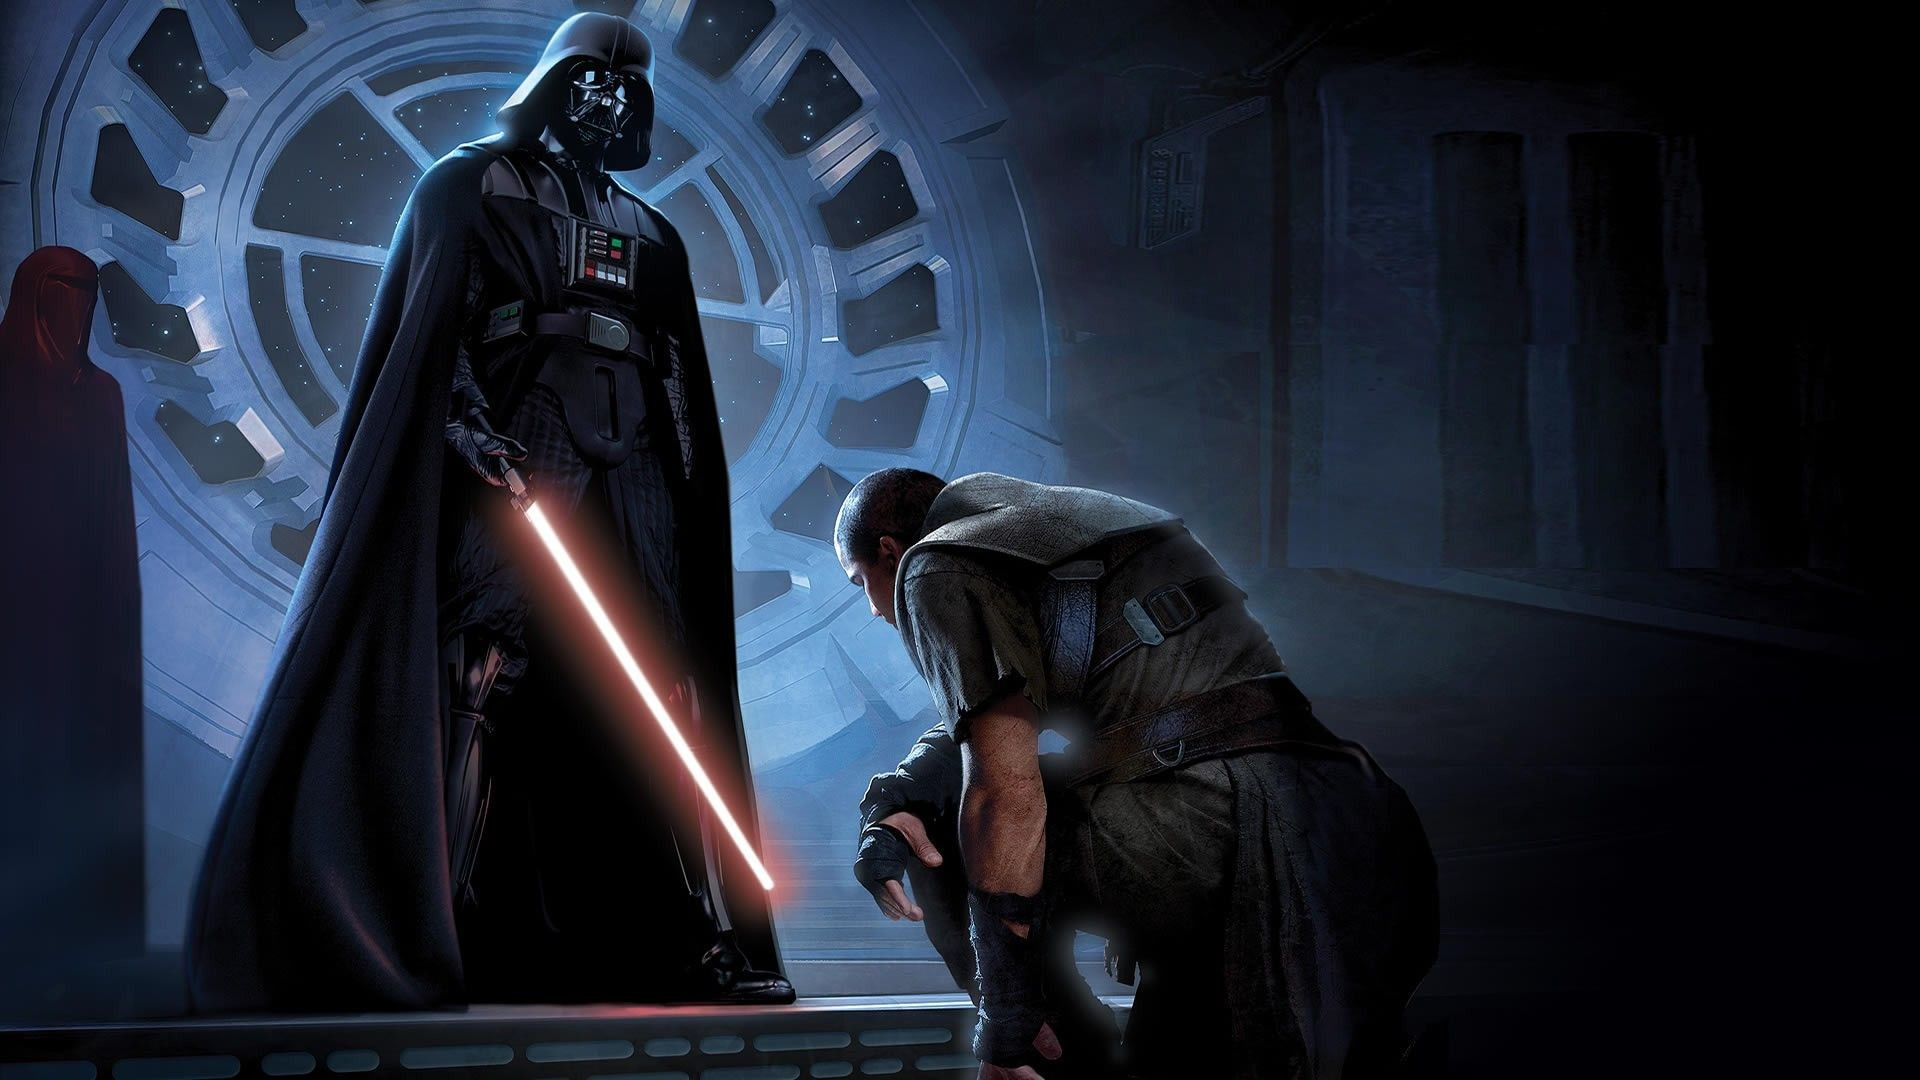 1920x1080 Darth Vader, Video Games, Star Wars, Star Wars: The Force .